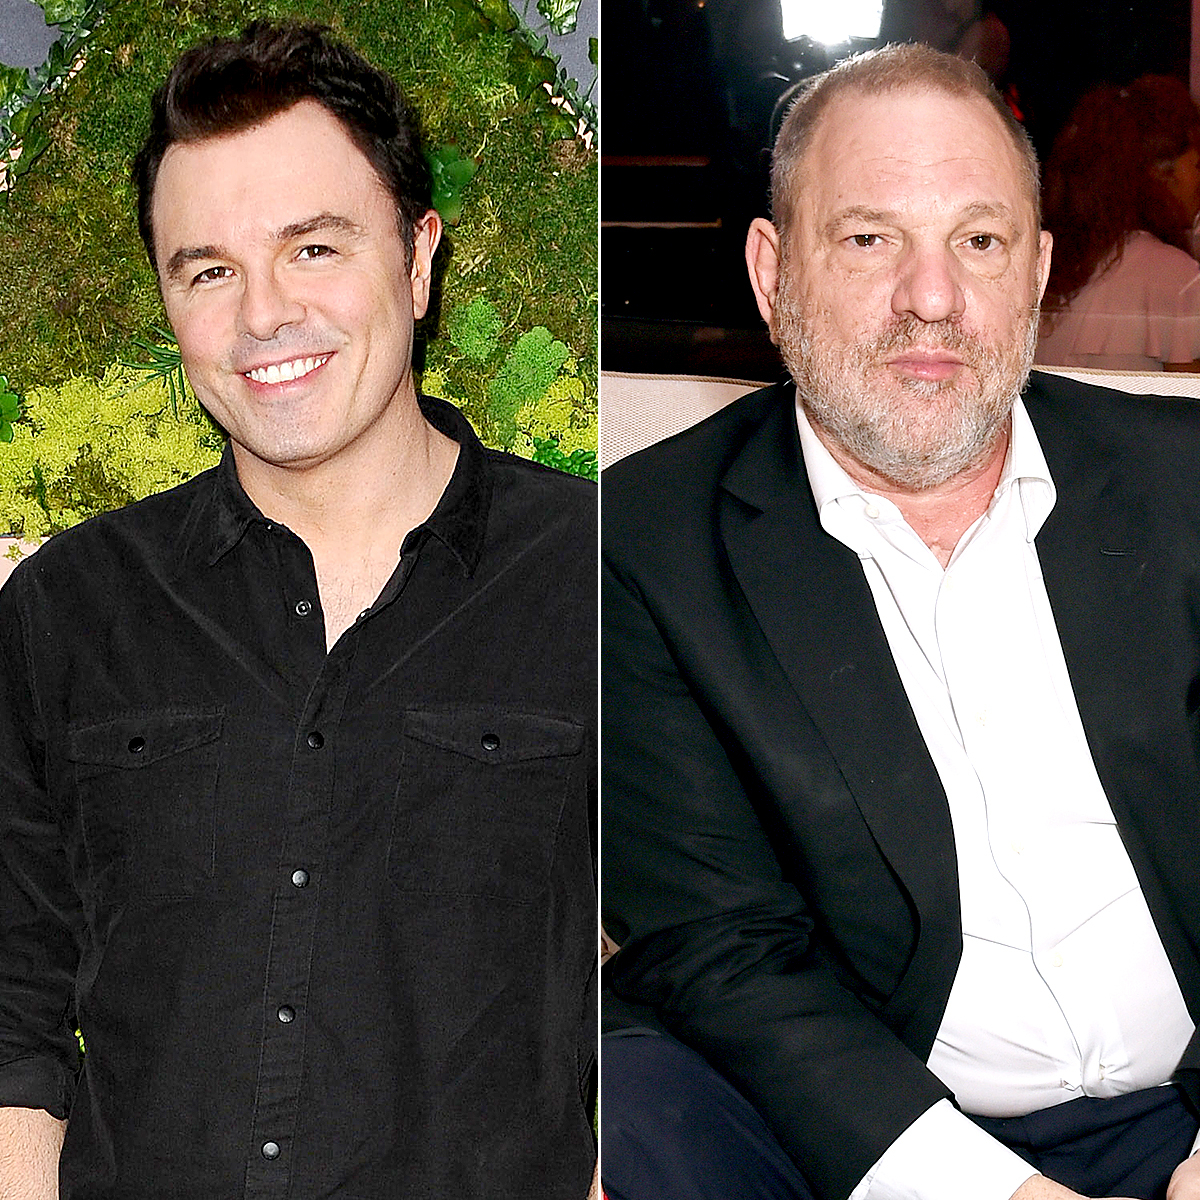 Seth MacFarlane and Harvey Weinstein Jason LaVeris/FilmMagic; Dave Benett/Getty Images for Jaeger-LeCoultre